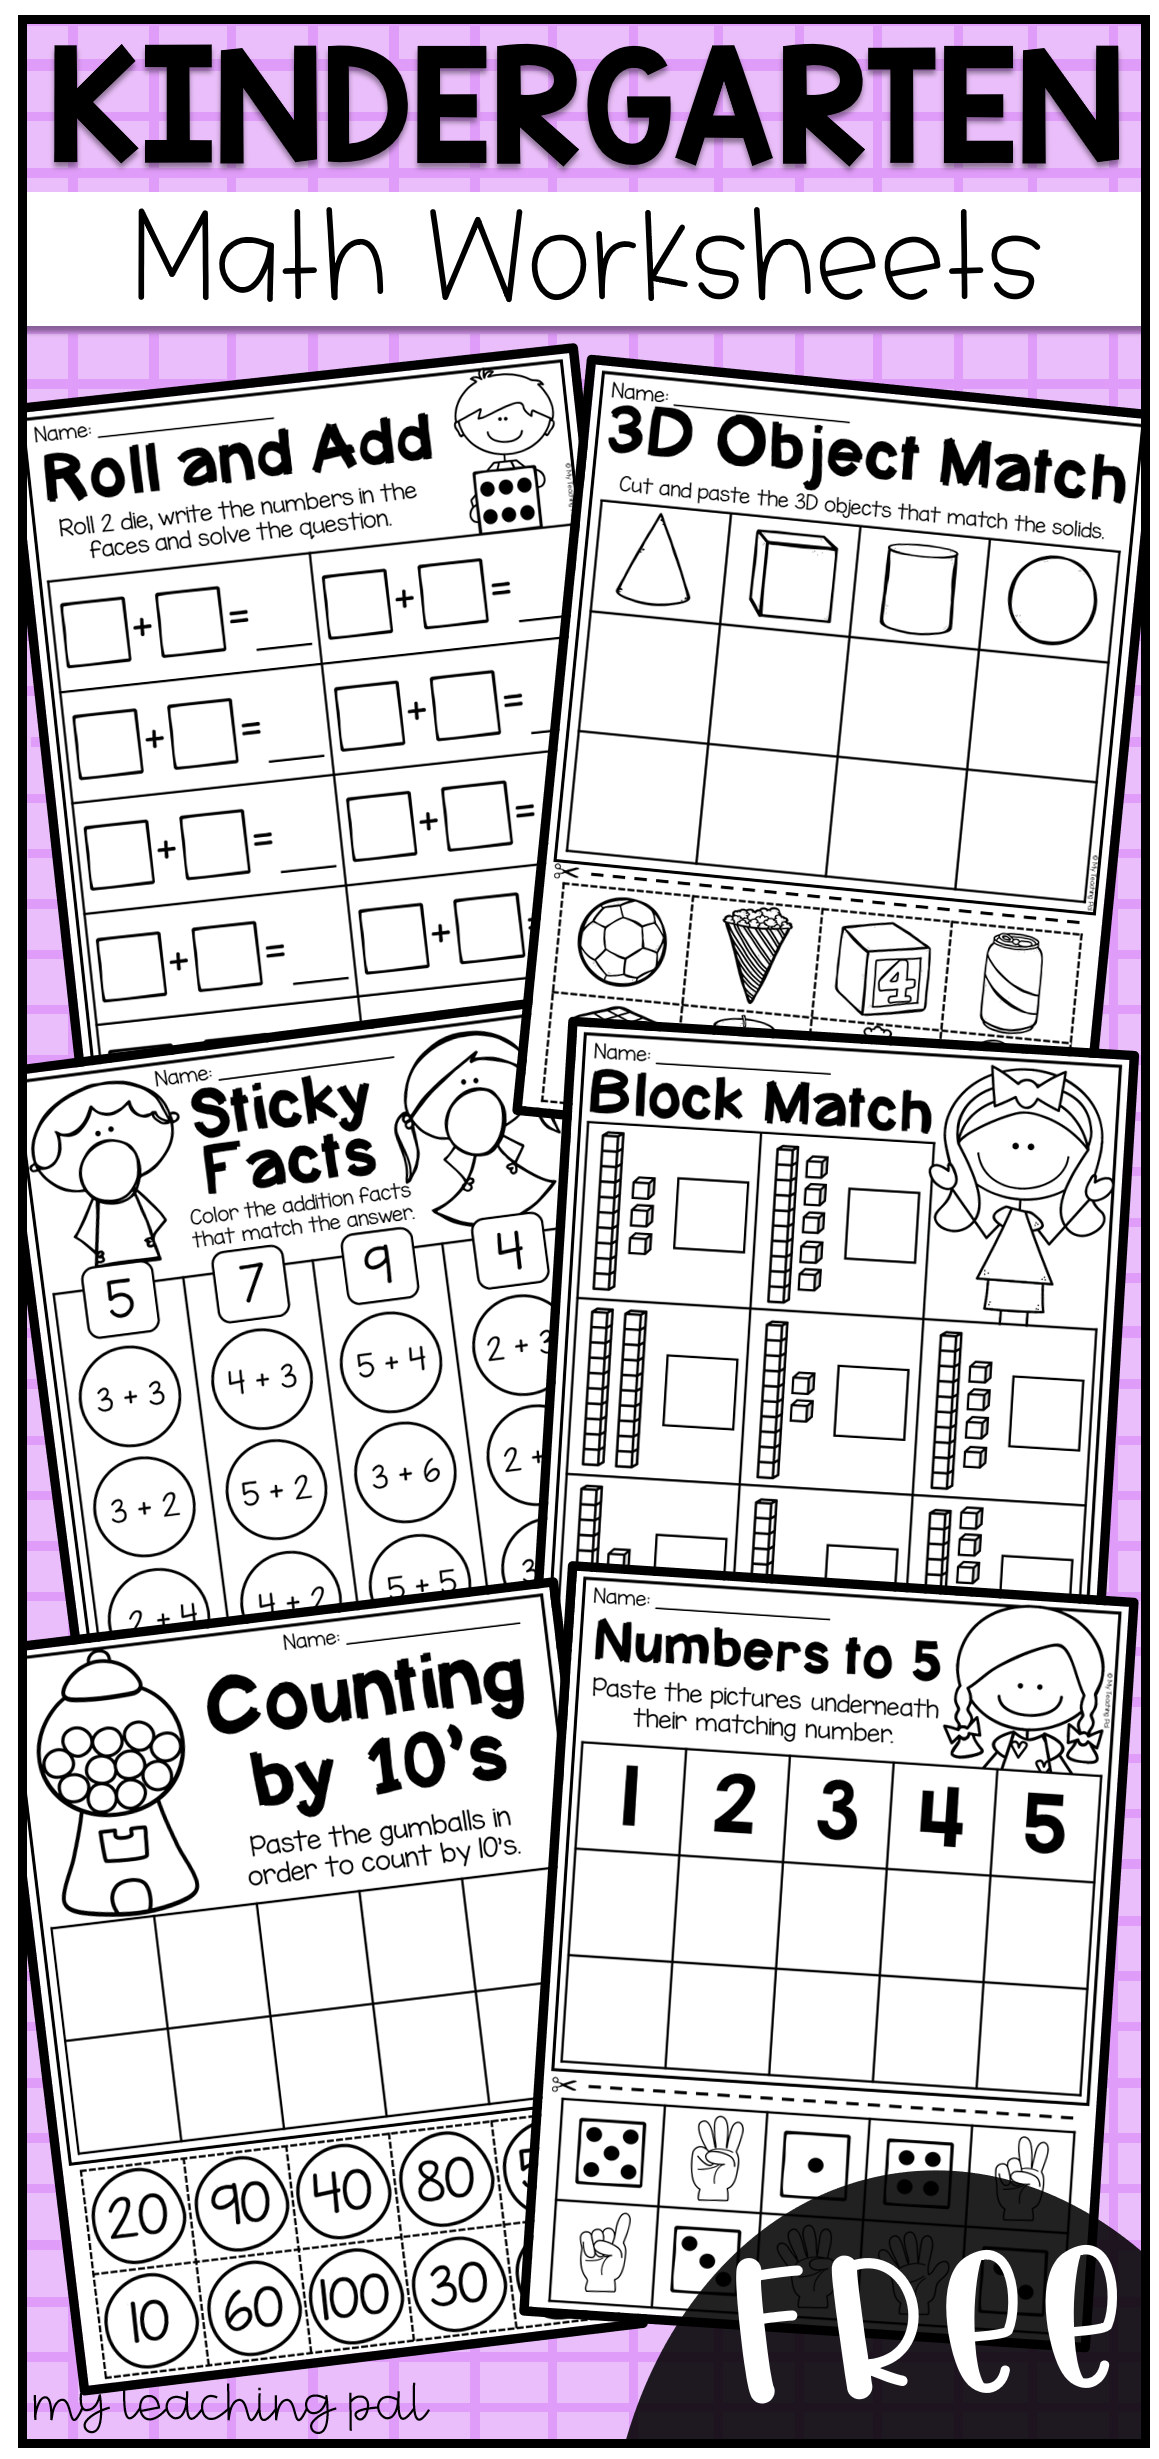 Free Kindergarten Math Worksheets | Homeschool